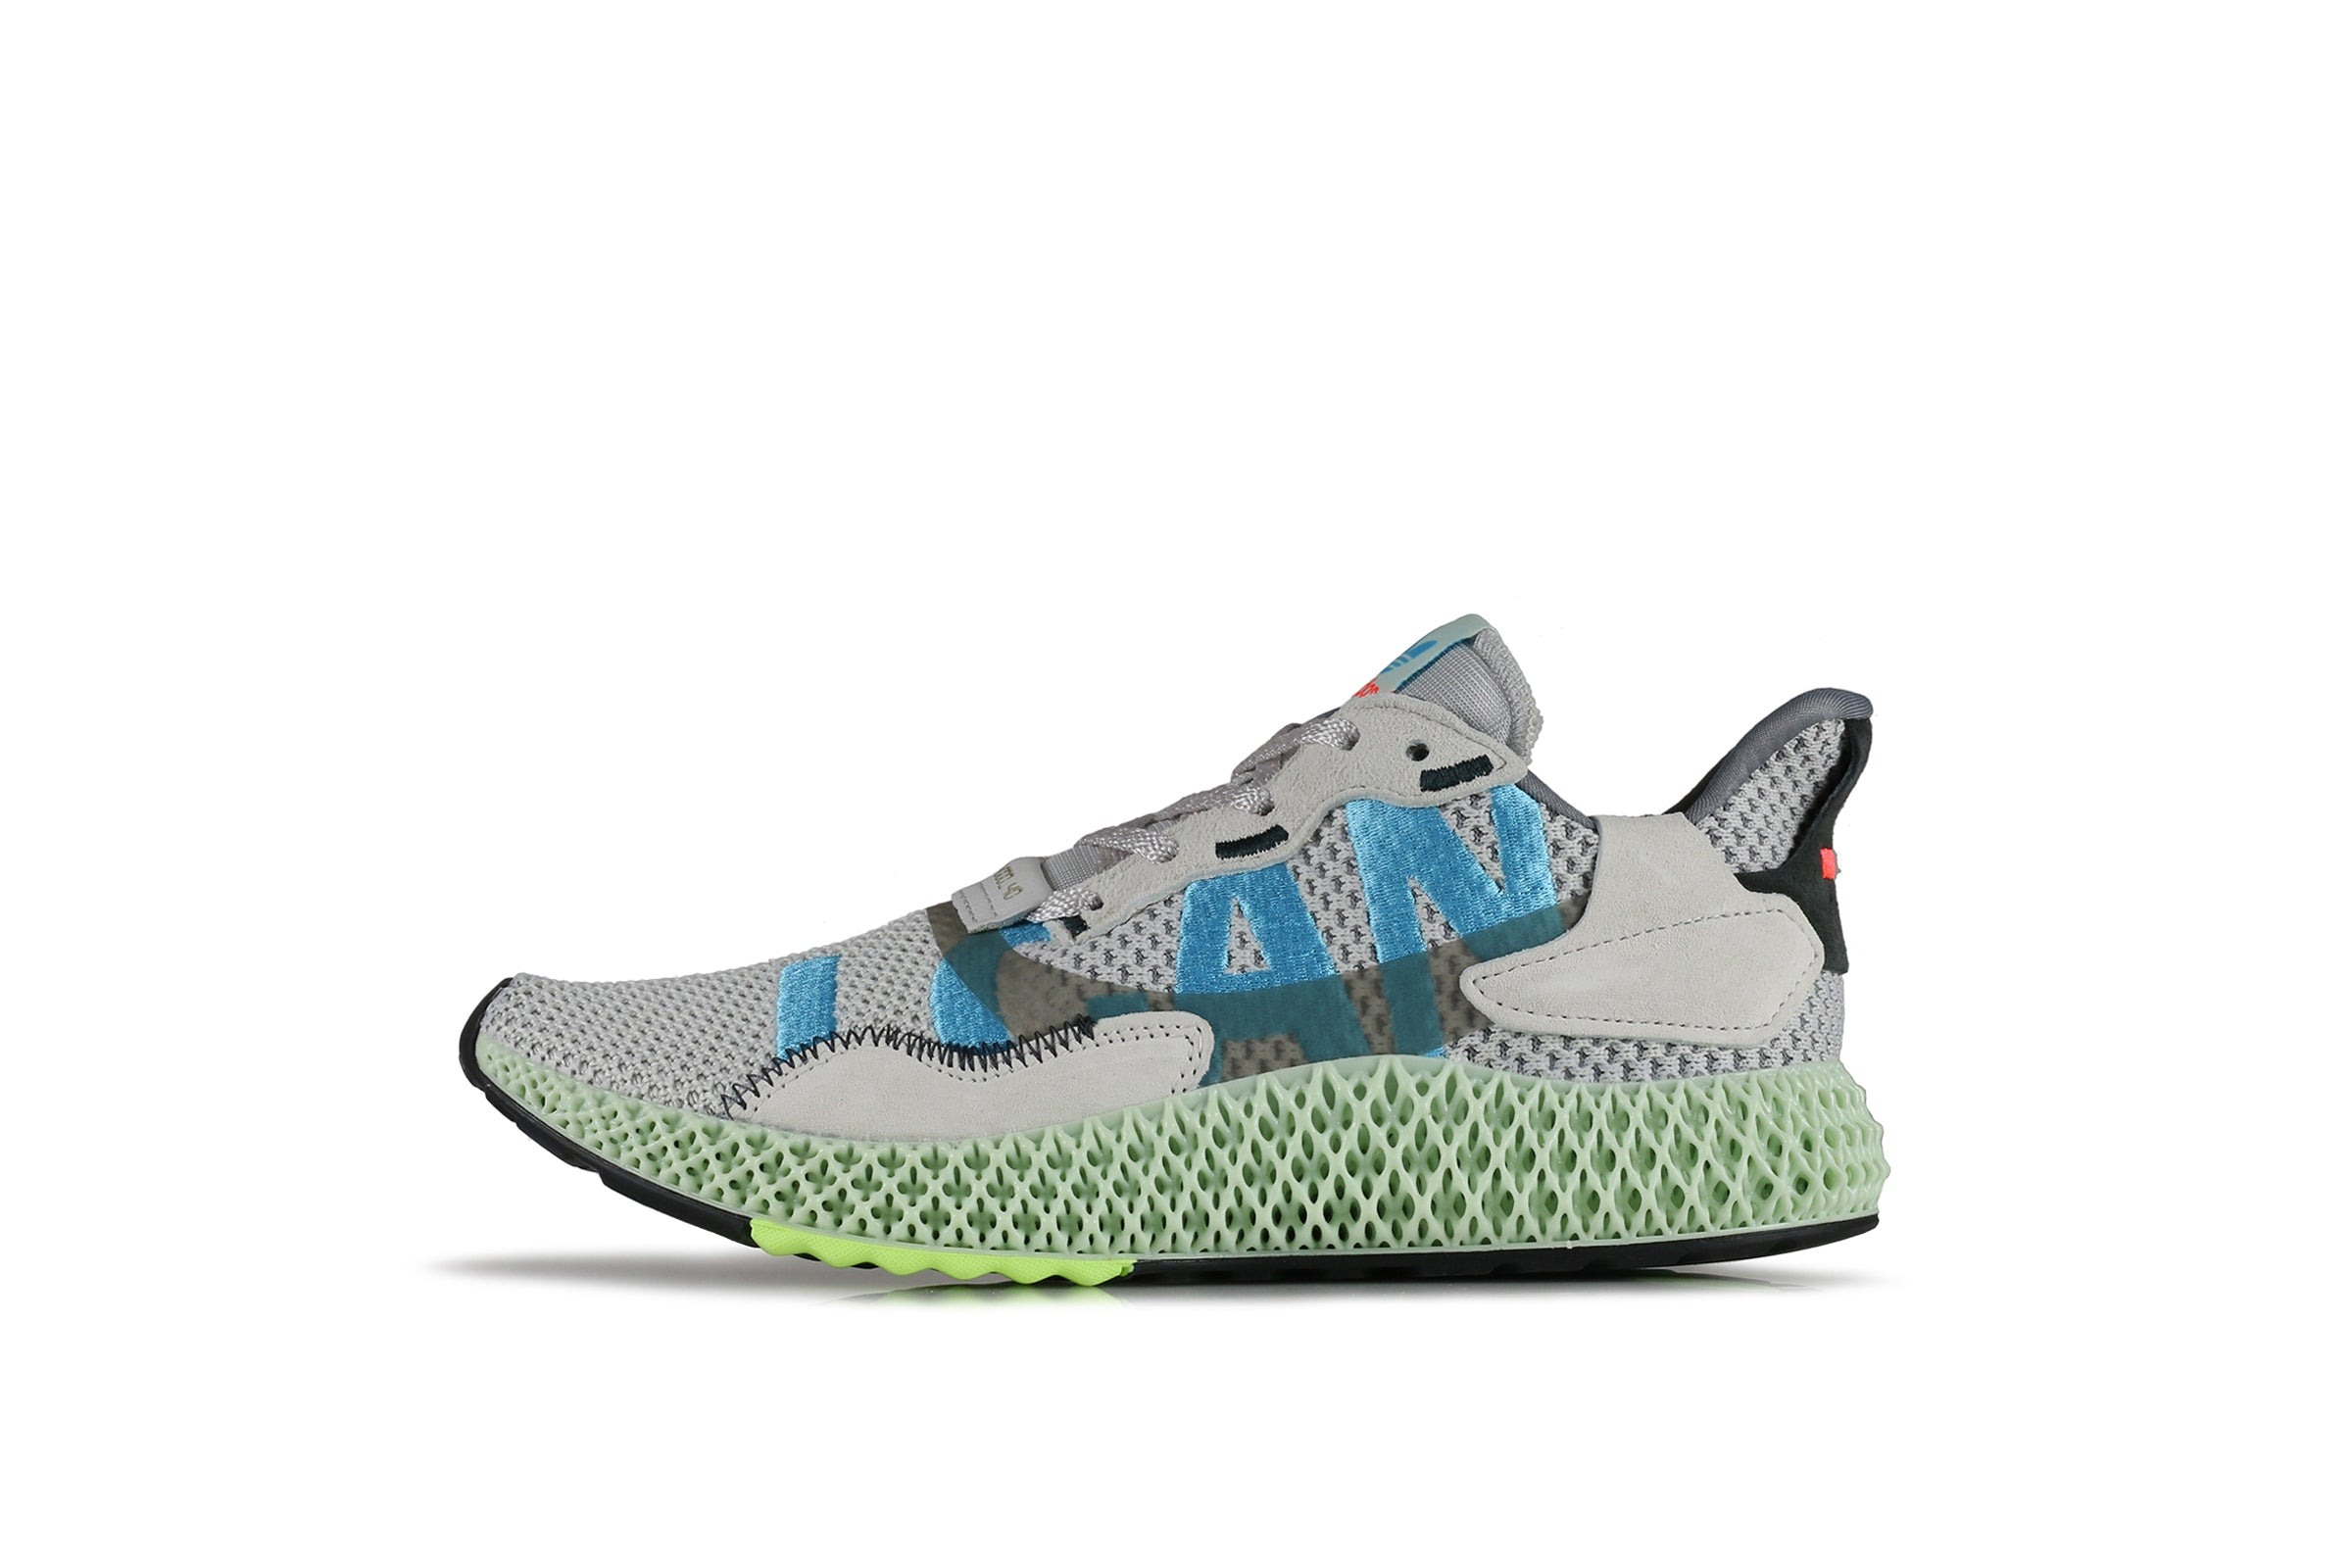 Adidas Yeezy Boost 350 South Africa Adidas Lace Shoes Womens